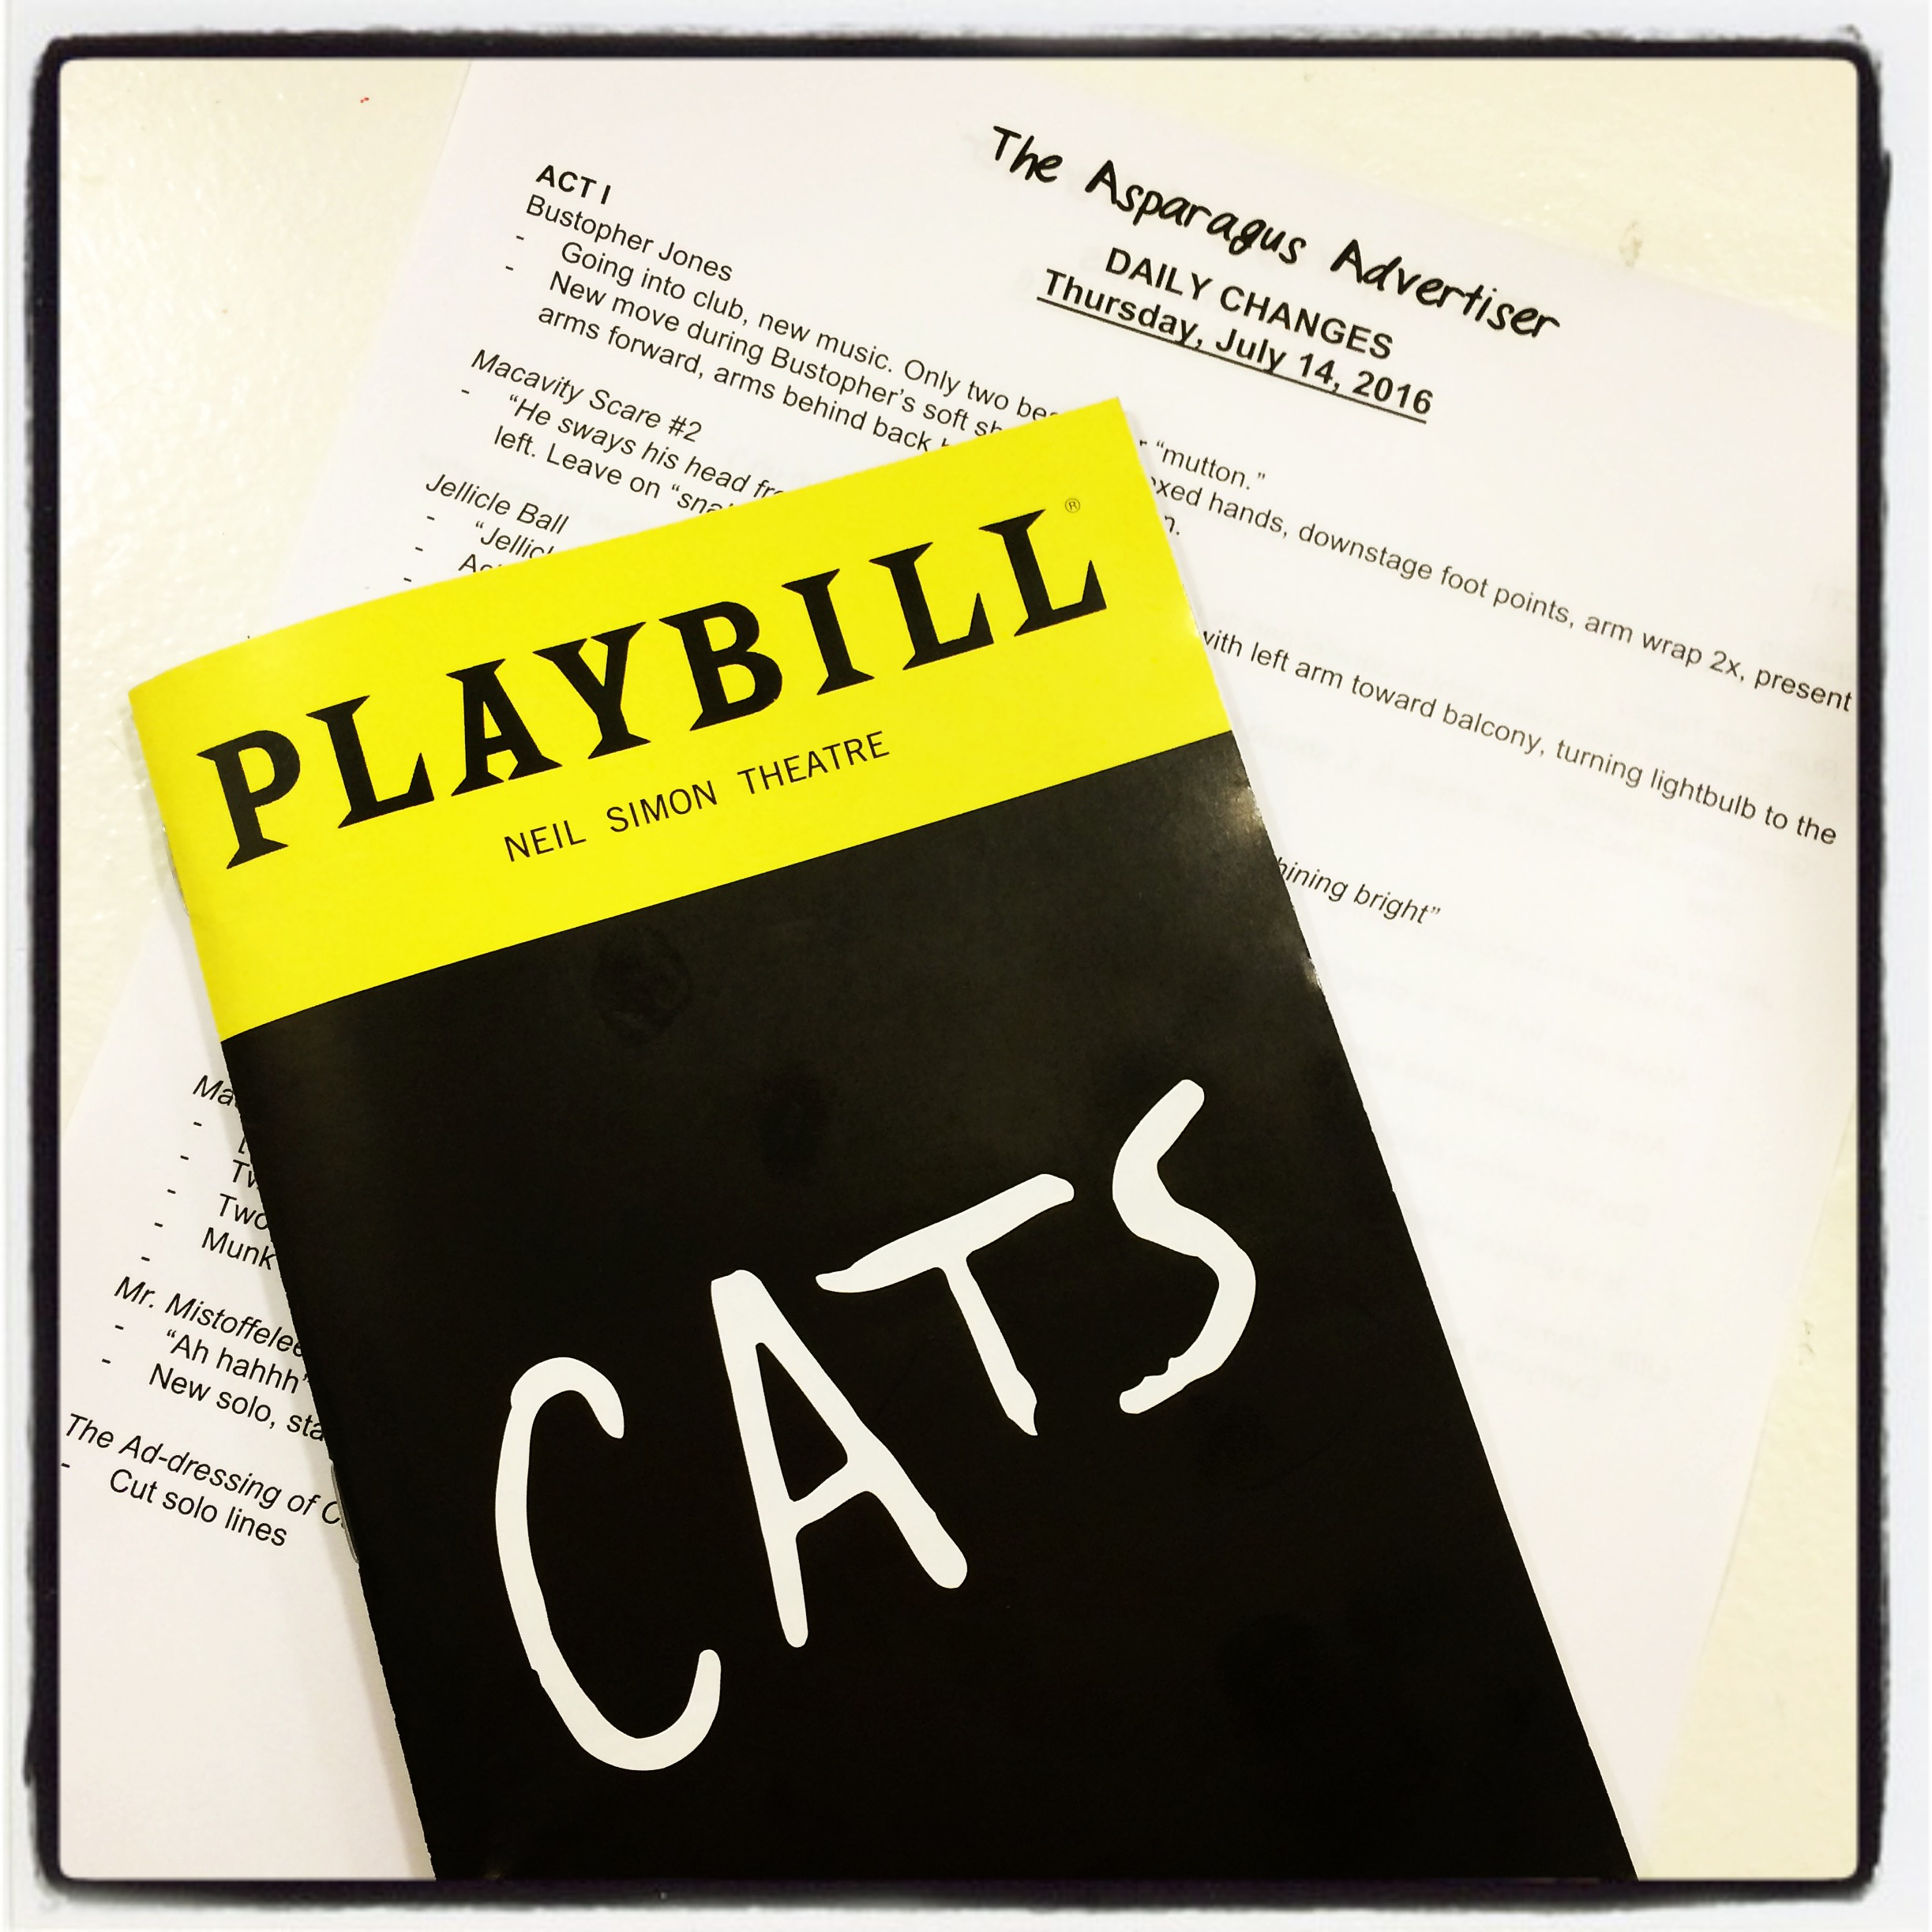 The Daily Change Sheet and First Preview Playbill Cats / Neil Simon Theatre July 14, 2107  photo credit :Christopher Gurr